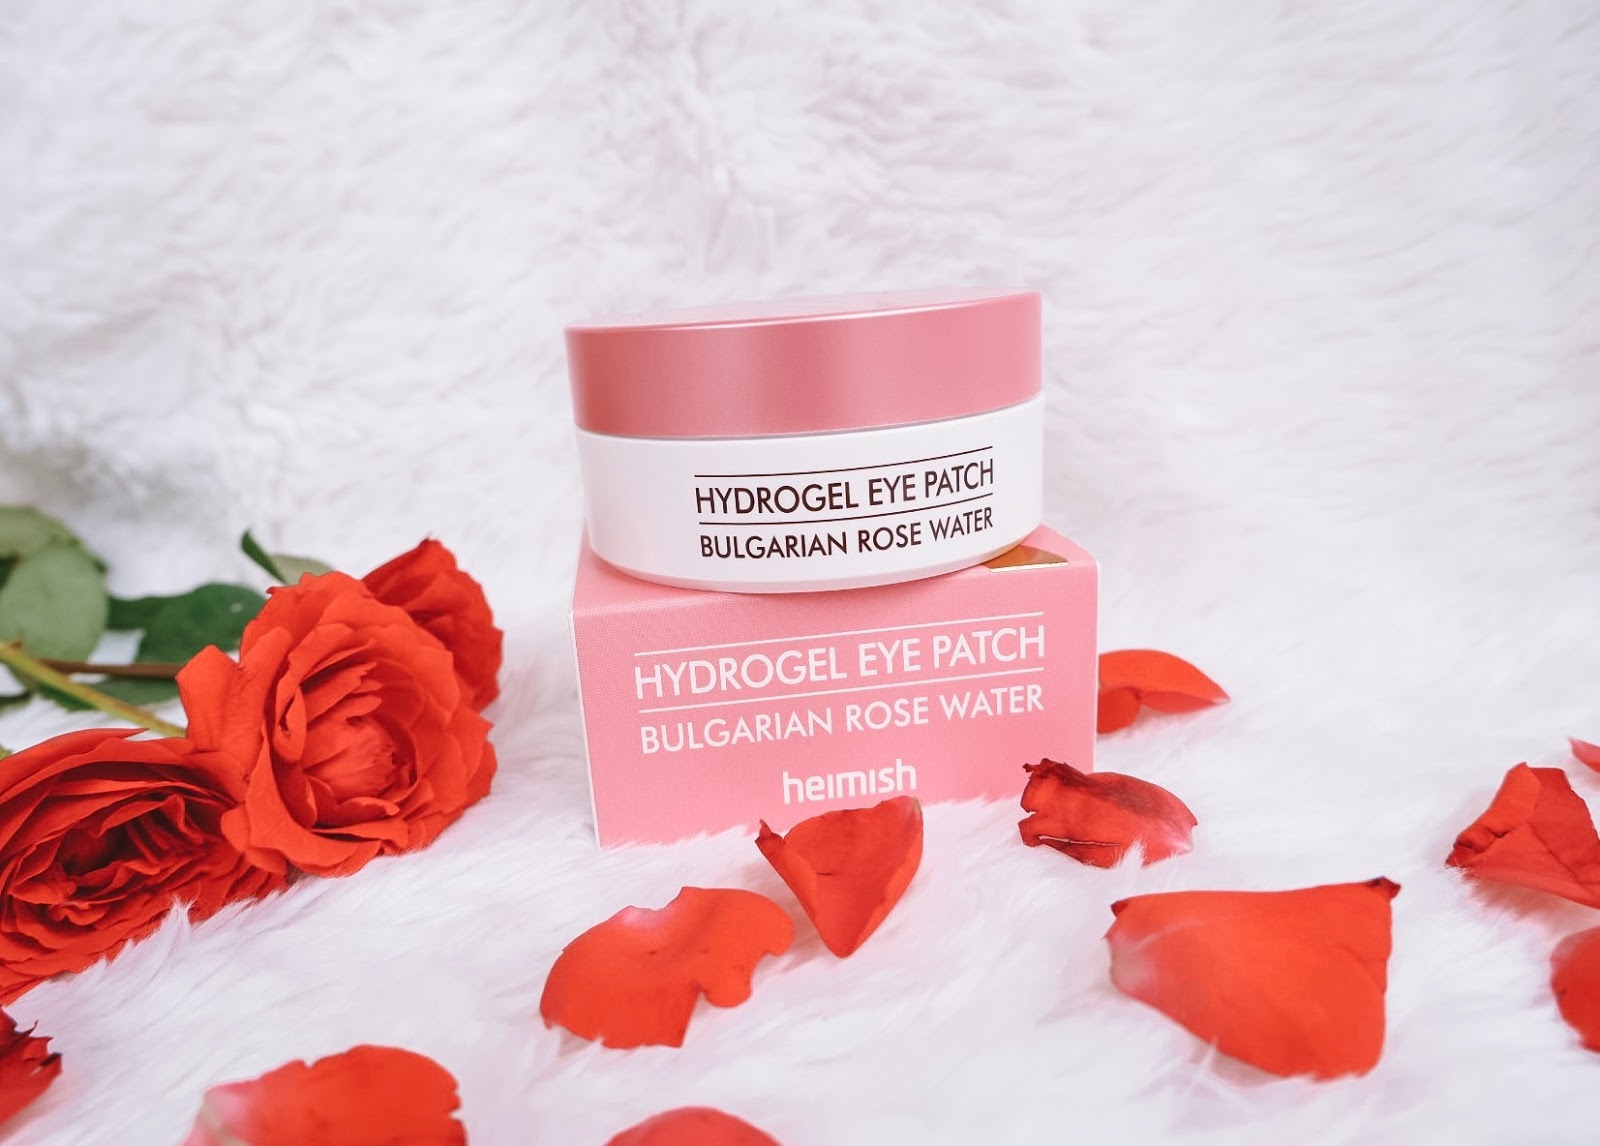 Review: Heimish Bulgarian Rose Water Hydrogel Eye Patch